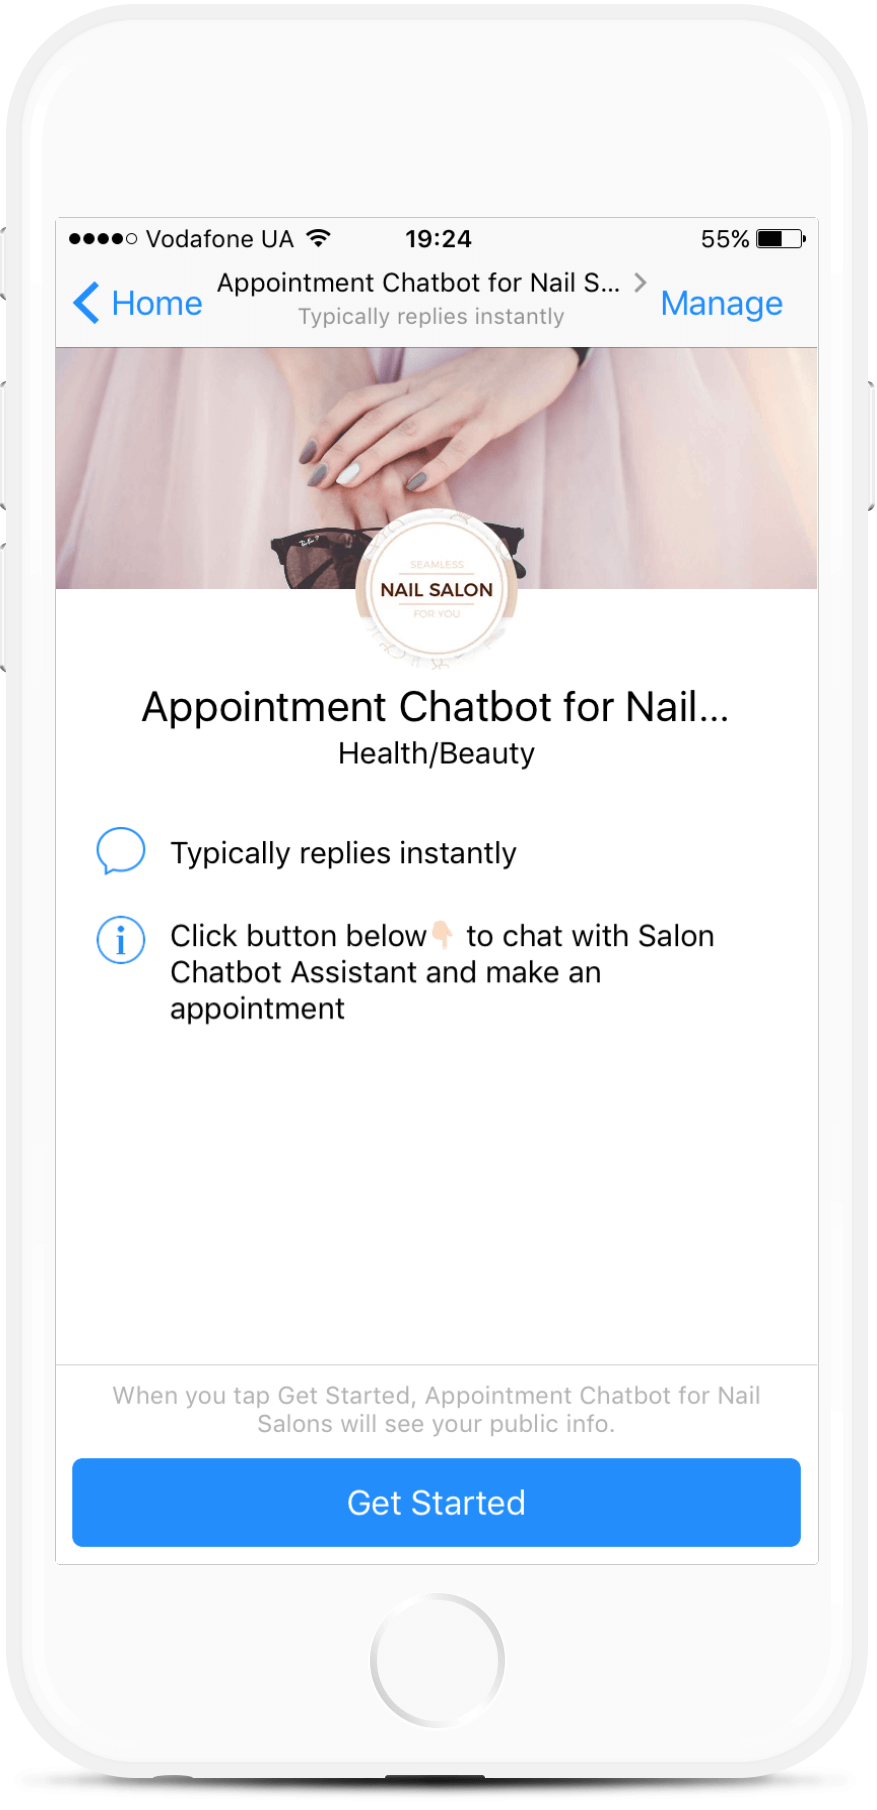 Appointment Chatbot for Nail Salons bot screenshot